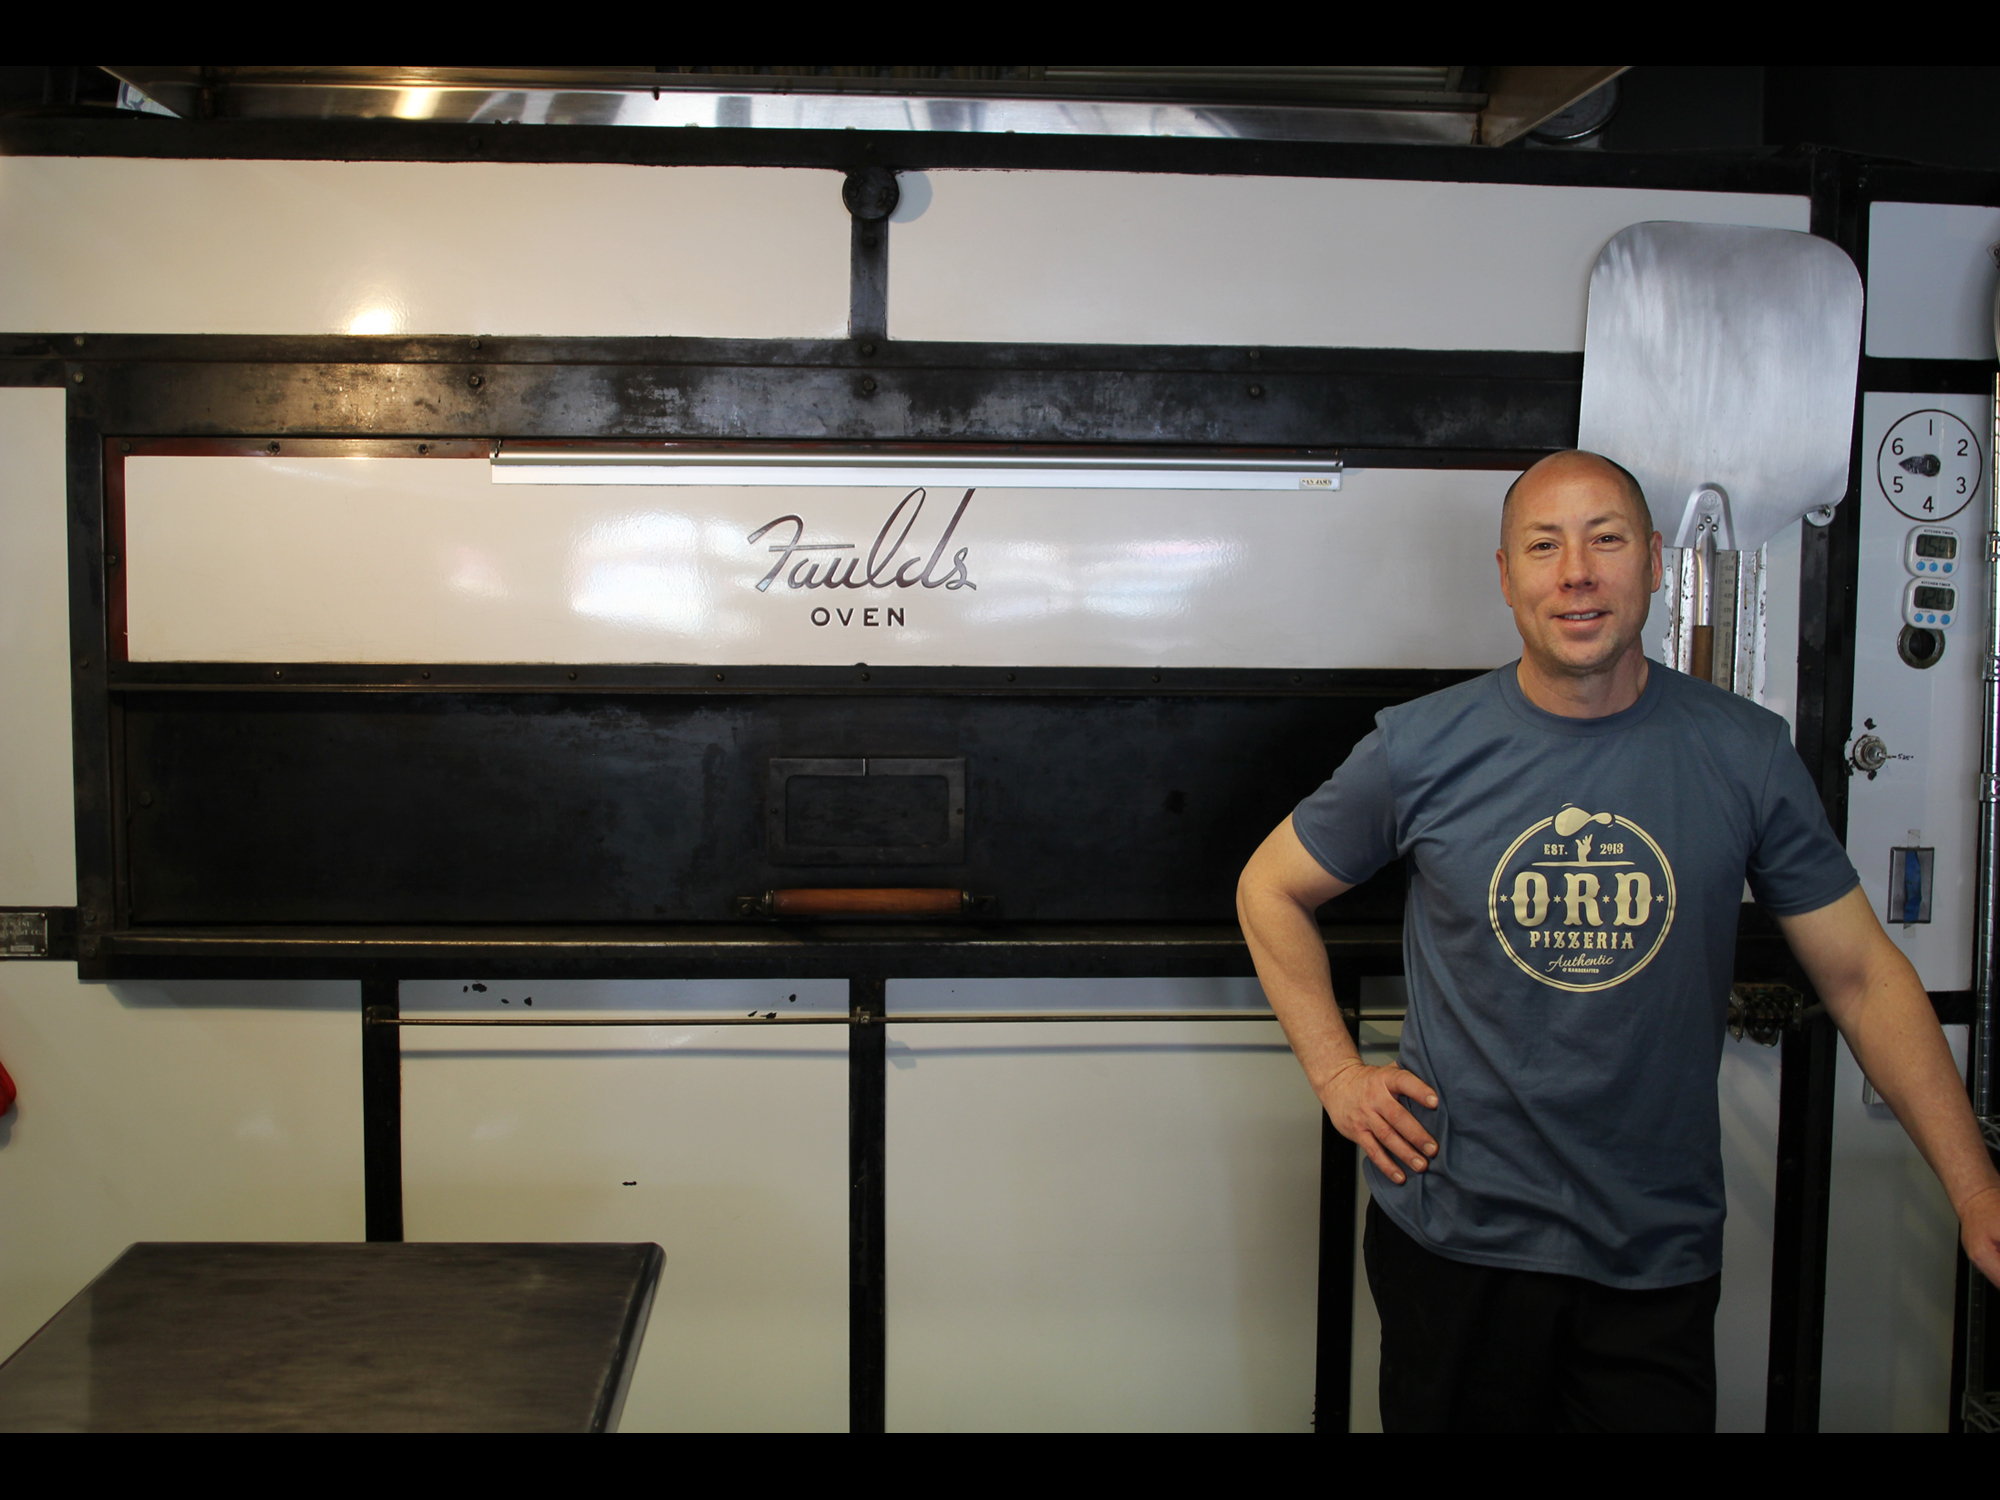 RESTORING A BADASS CHICAGO PIZZA OVEN AT ORD PIZZERIA